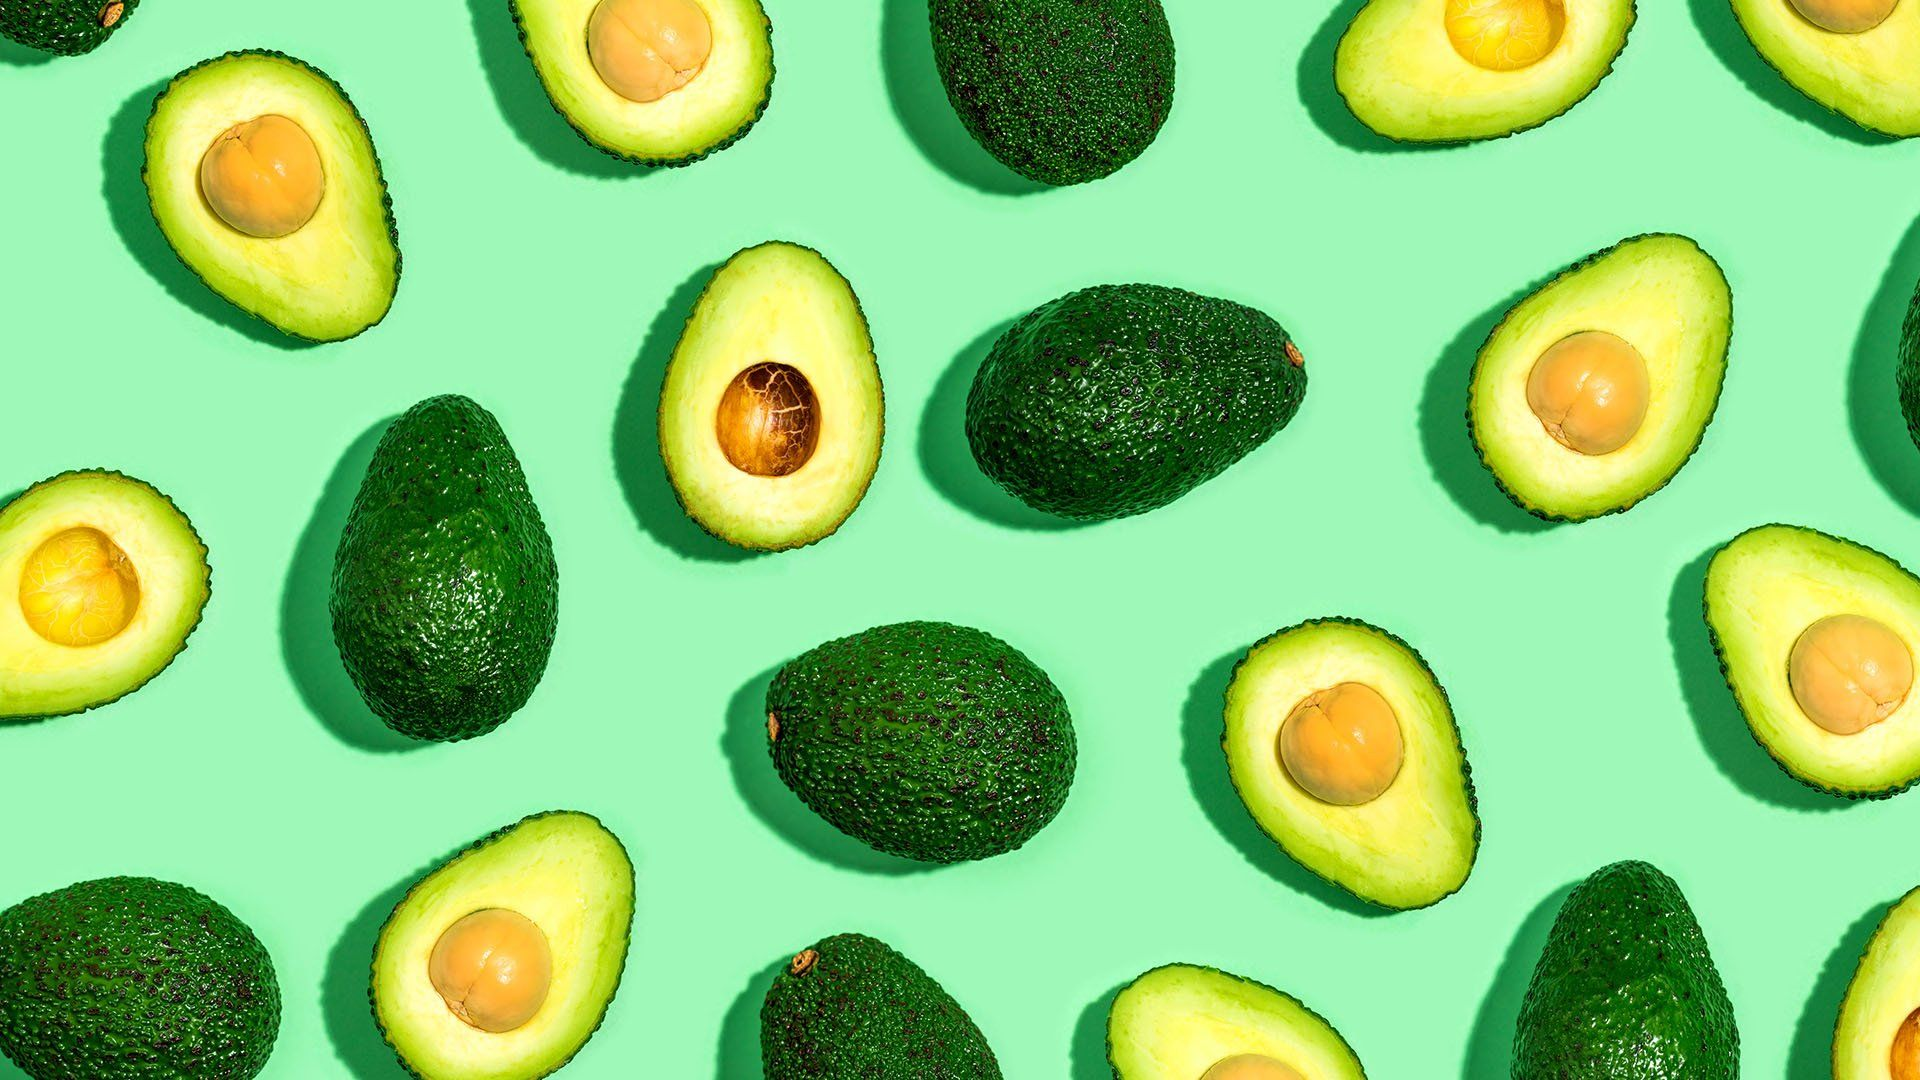 Avocado download nice wallpaper